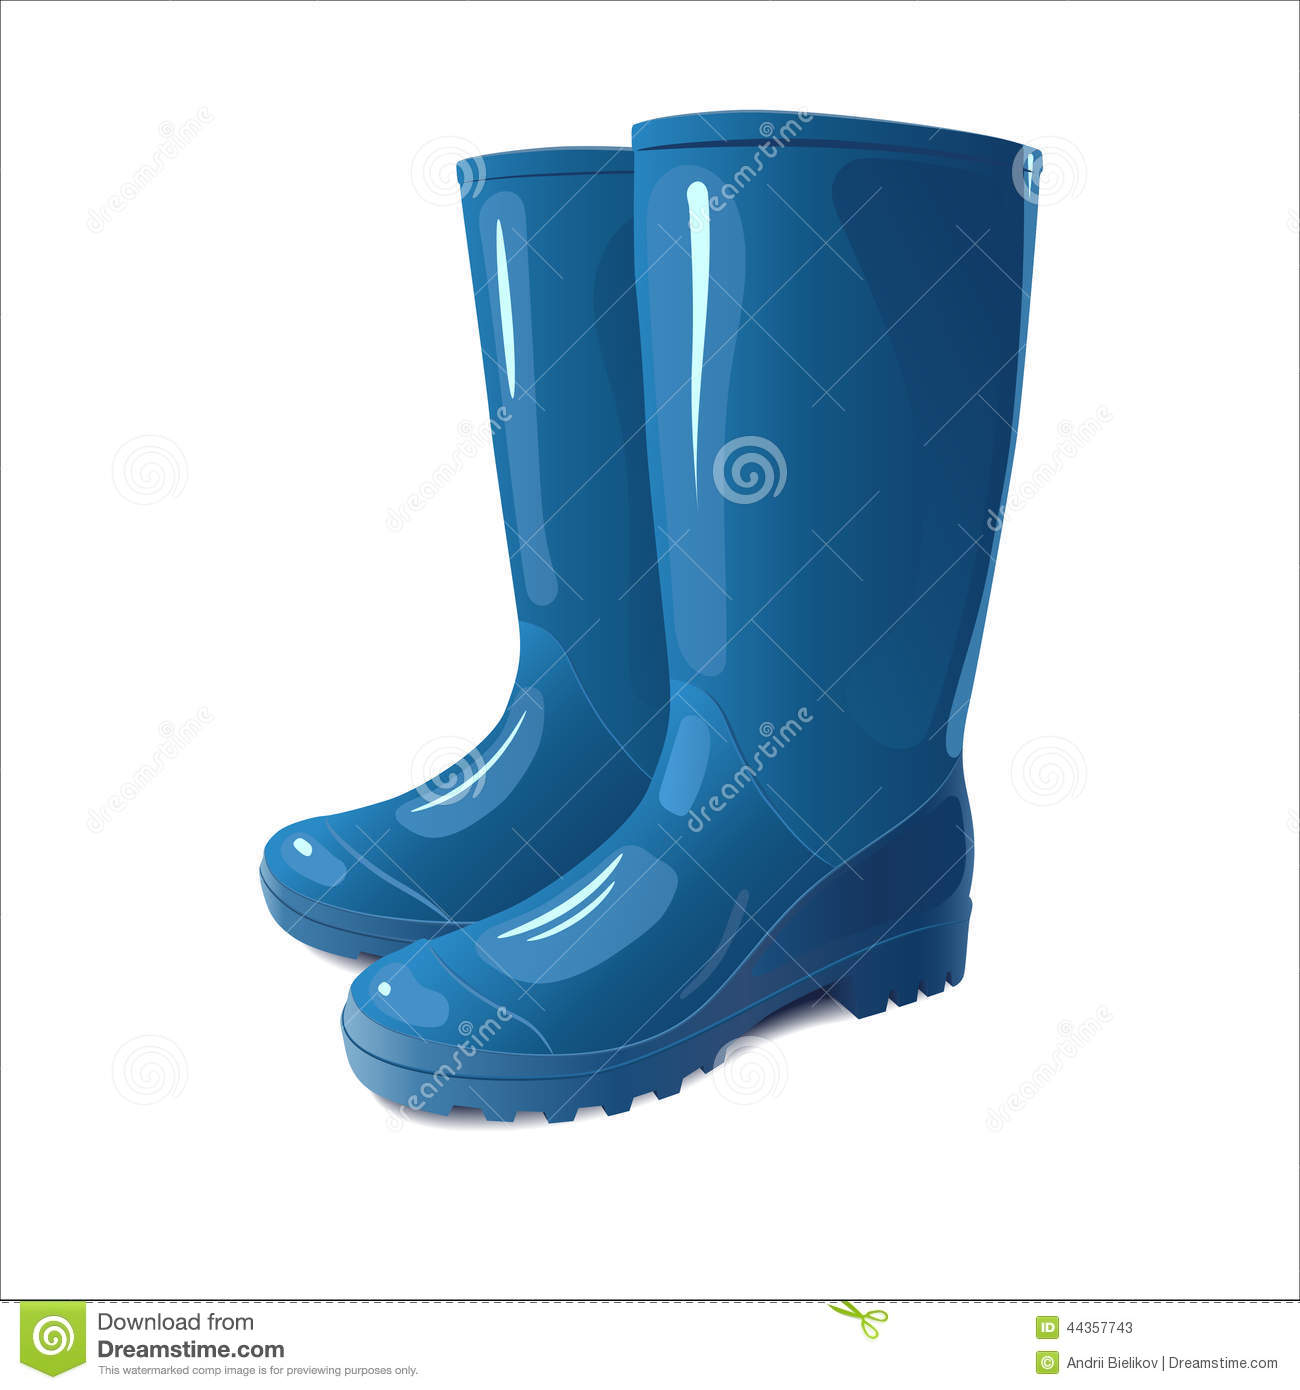 Blue Rain Boots Stock Vector - Image: 44357743